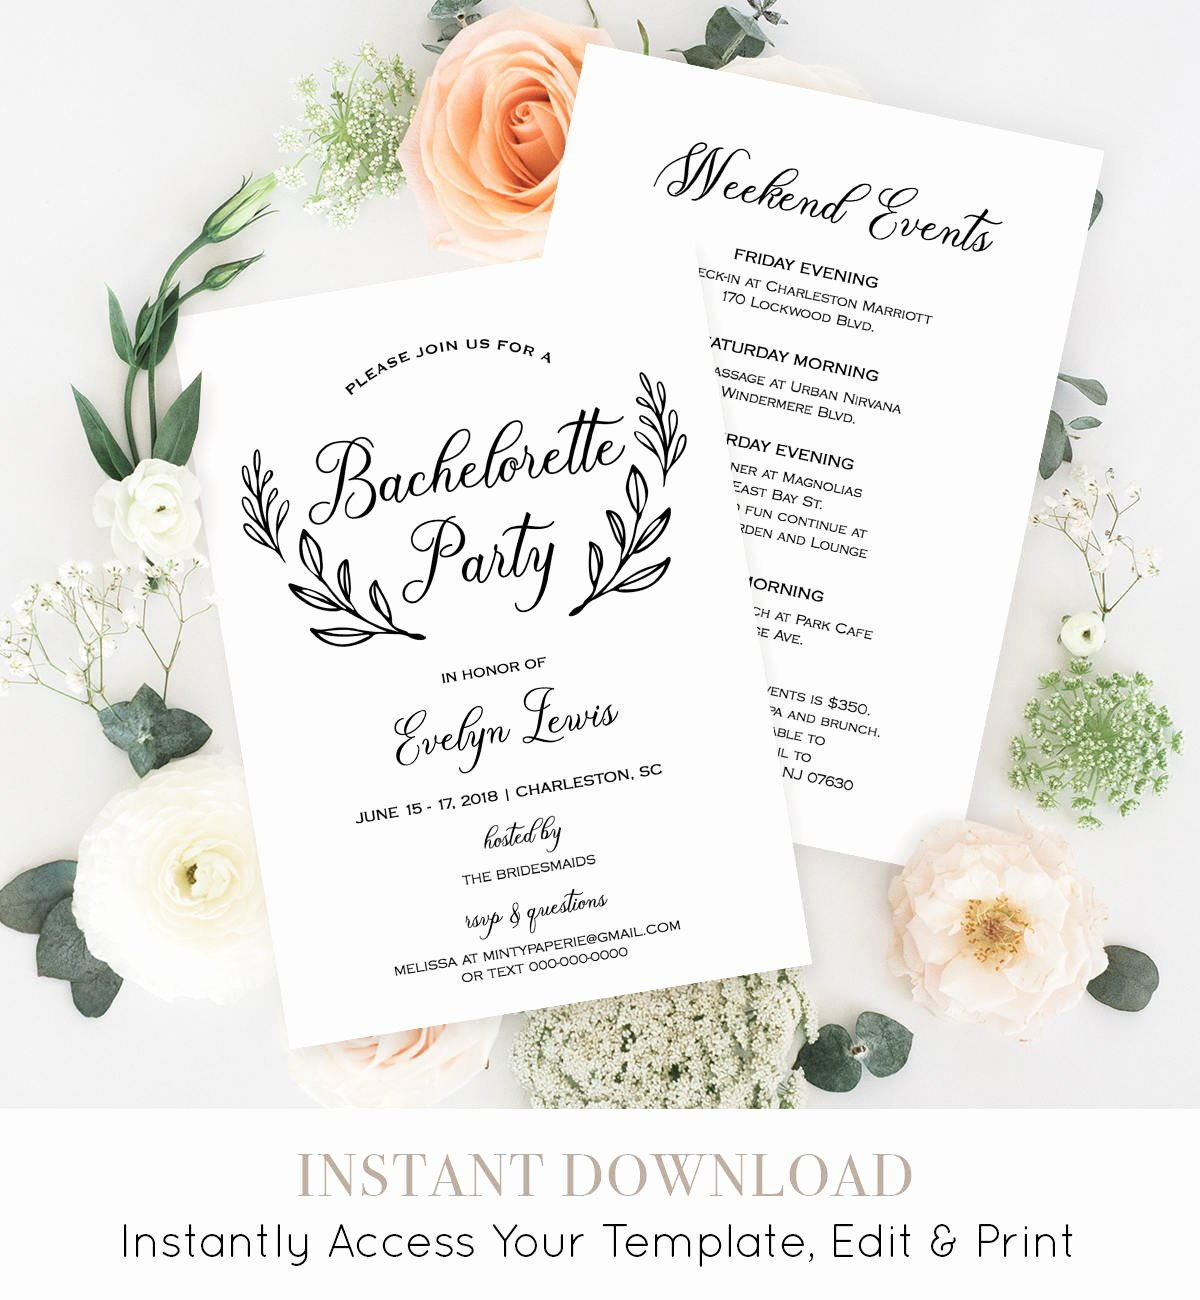 Bachelorette Party Agenda Template Best Of Bachelorette Party Invitation Template Printable